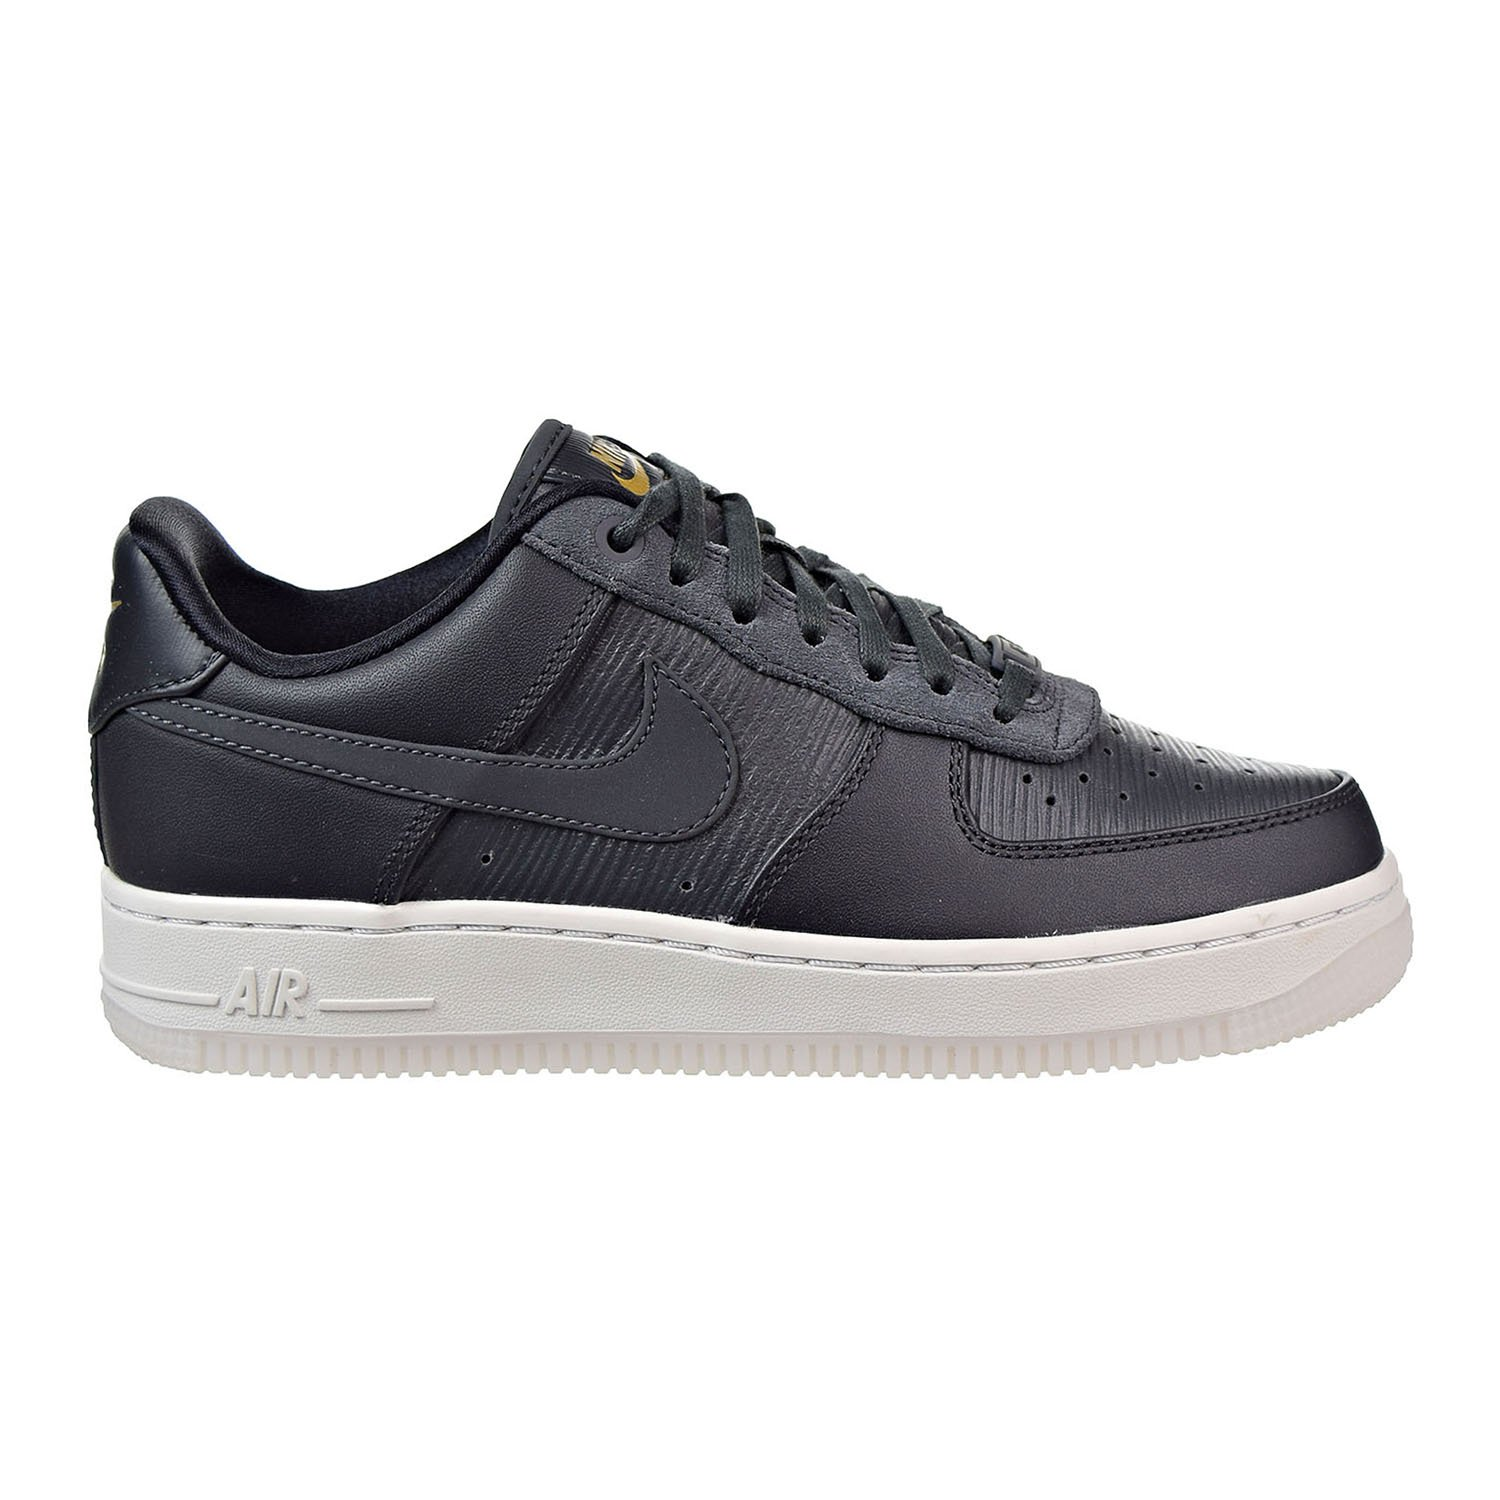 Nike Air Force 1 '07 LX Women's Shoes Anthracite/Anthracite 898889-005 (9 B(M) US)